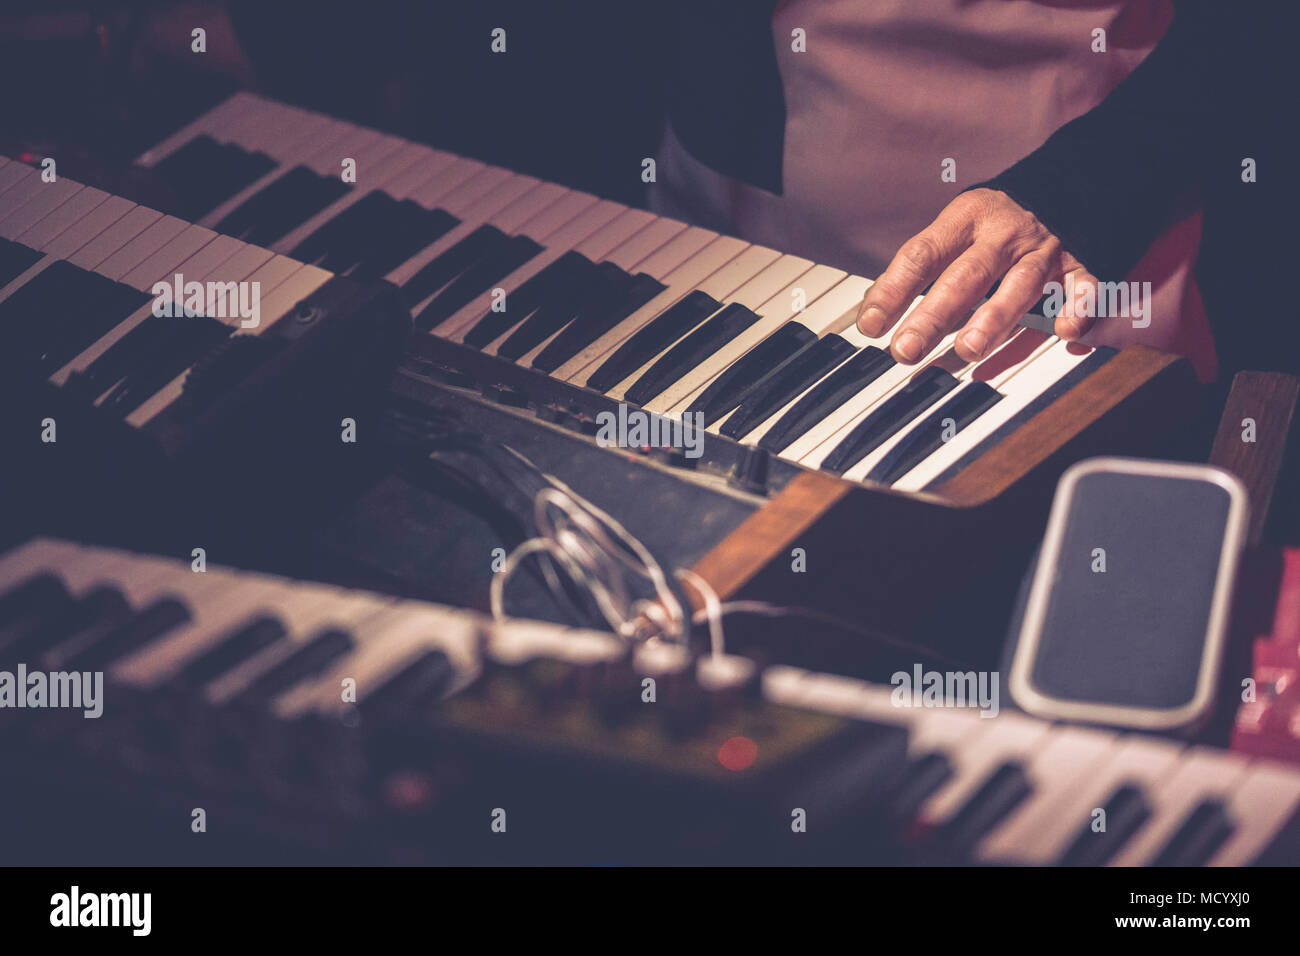 Hands of a musician while playing a keyboard of vintage synth - Stock Image